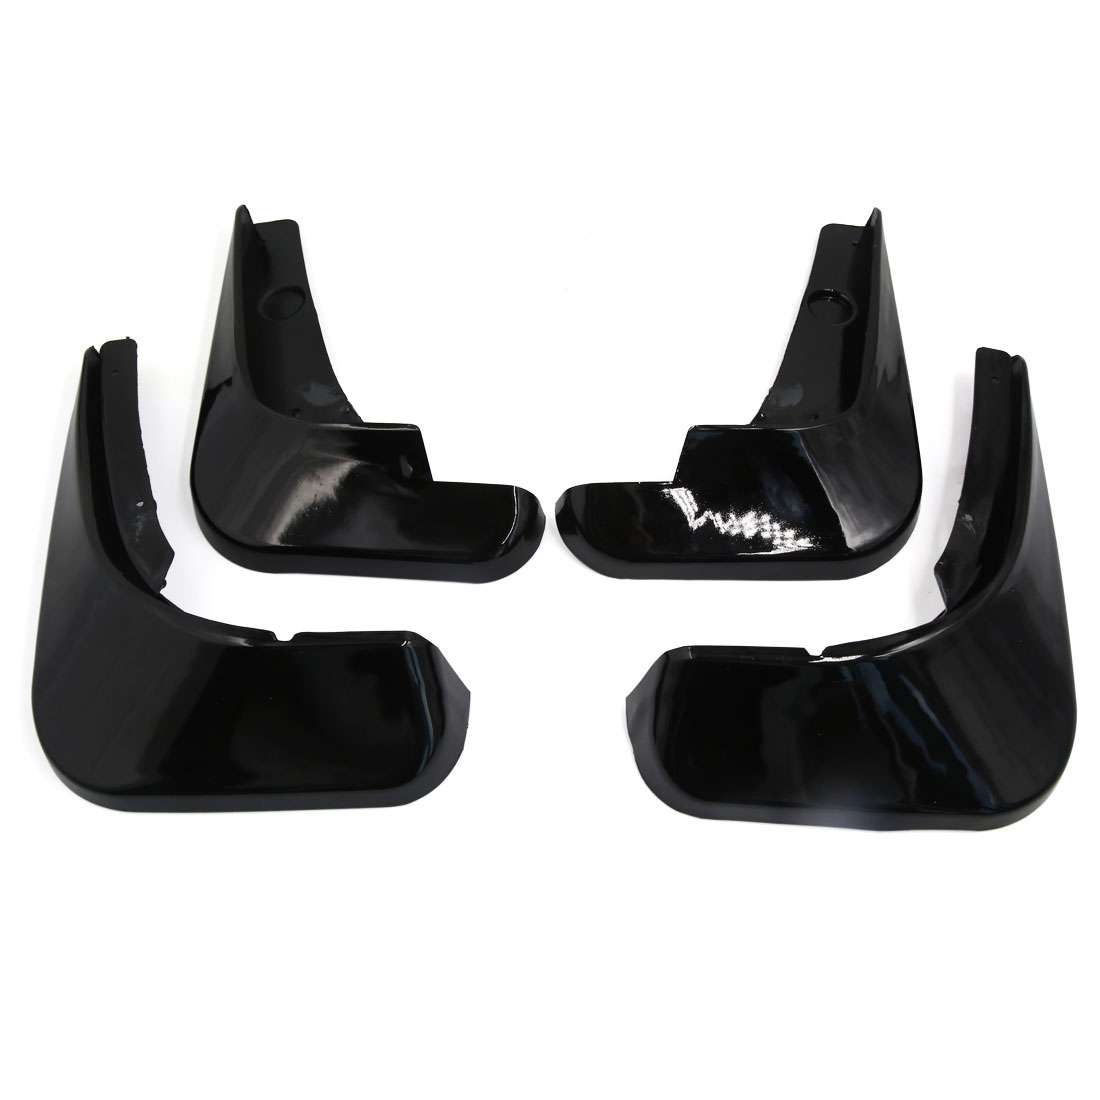 4Pcs Black Plastic Front Rear Splash Guards Mud Flaps Set for Chevrolet Cruze